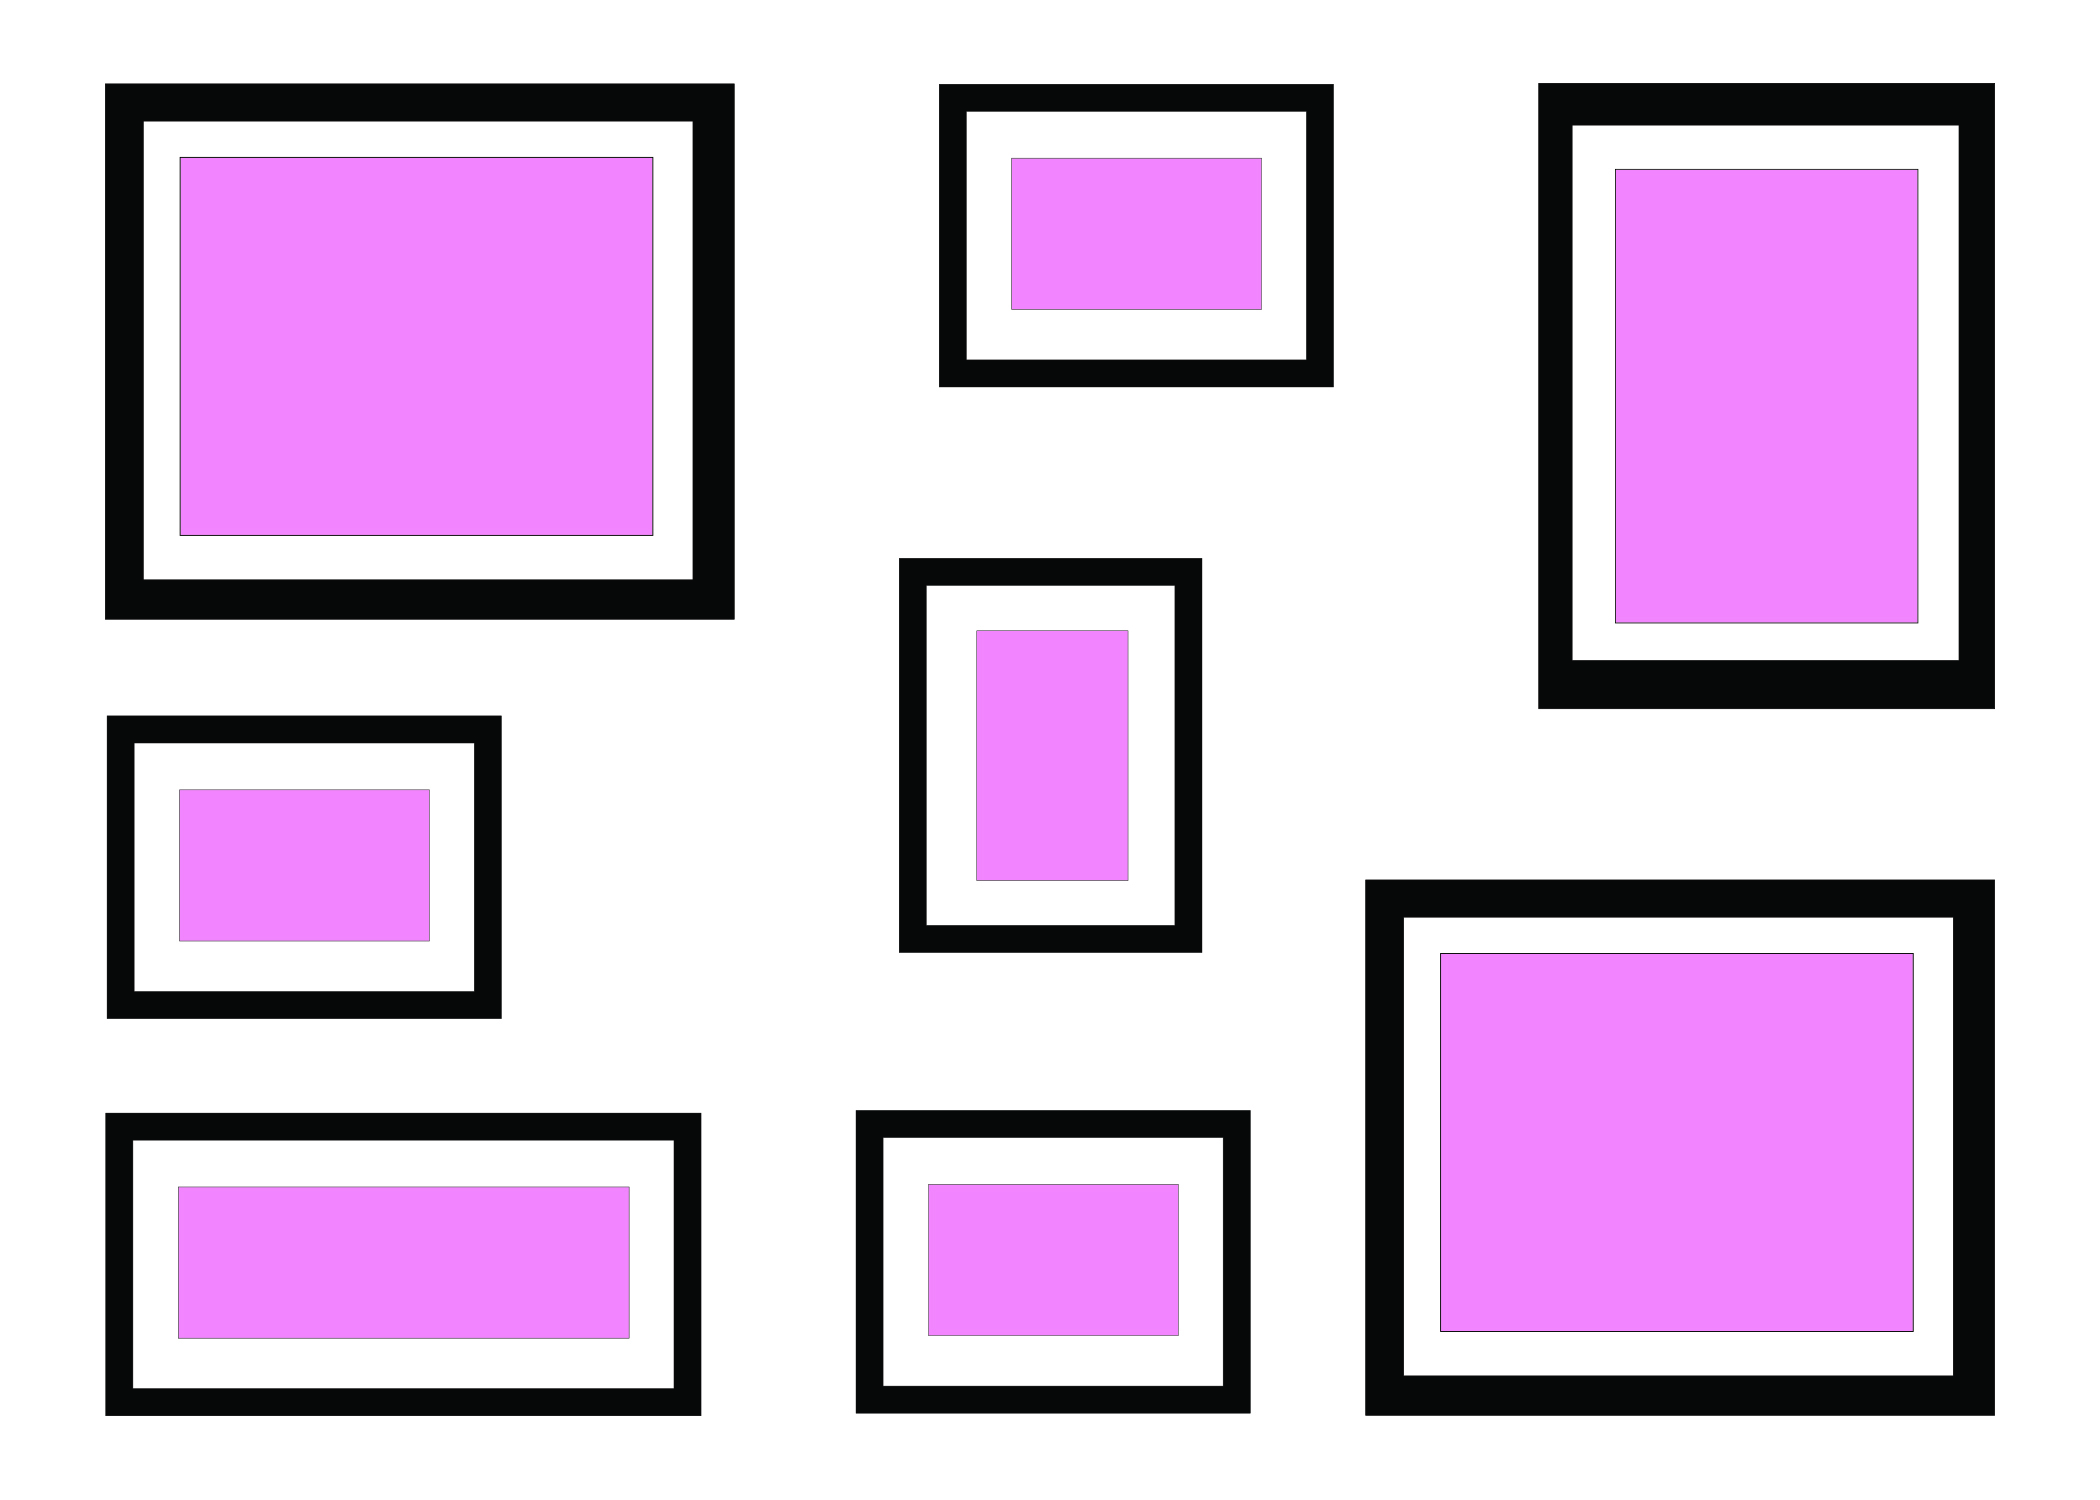 ALIGNED SHAPE – SQUARE OUTLINE - This is another kind of aligned shape. This is handy if you've got all different sizes and shapes but want to make a neat and orderly wall.